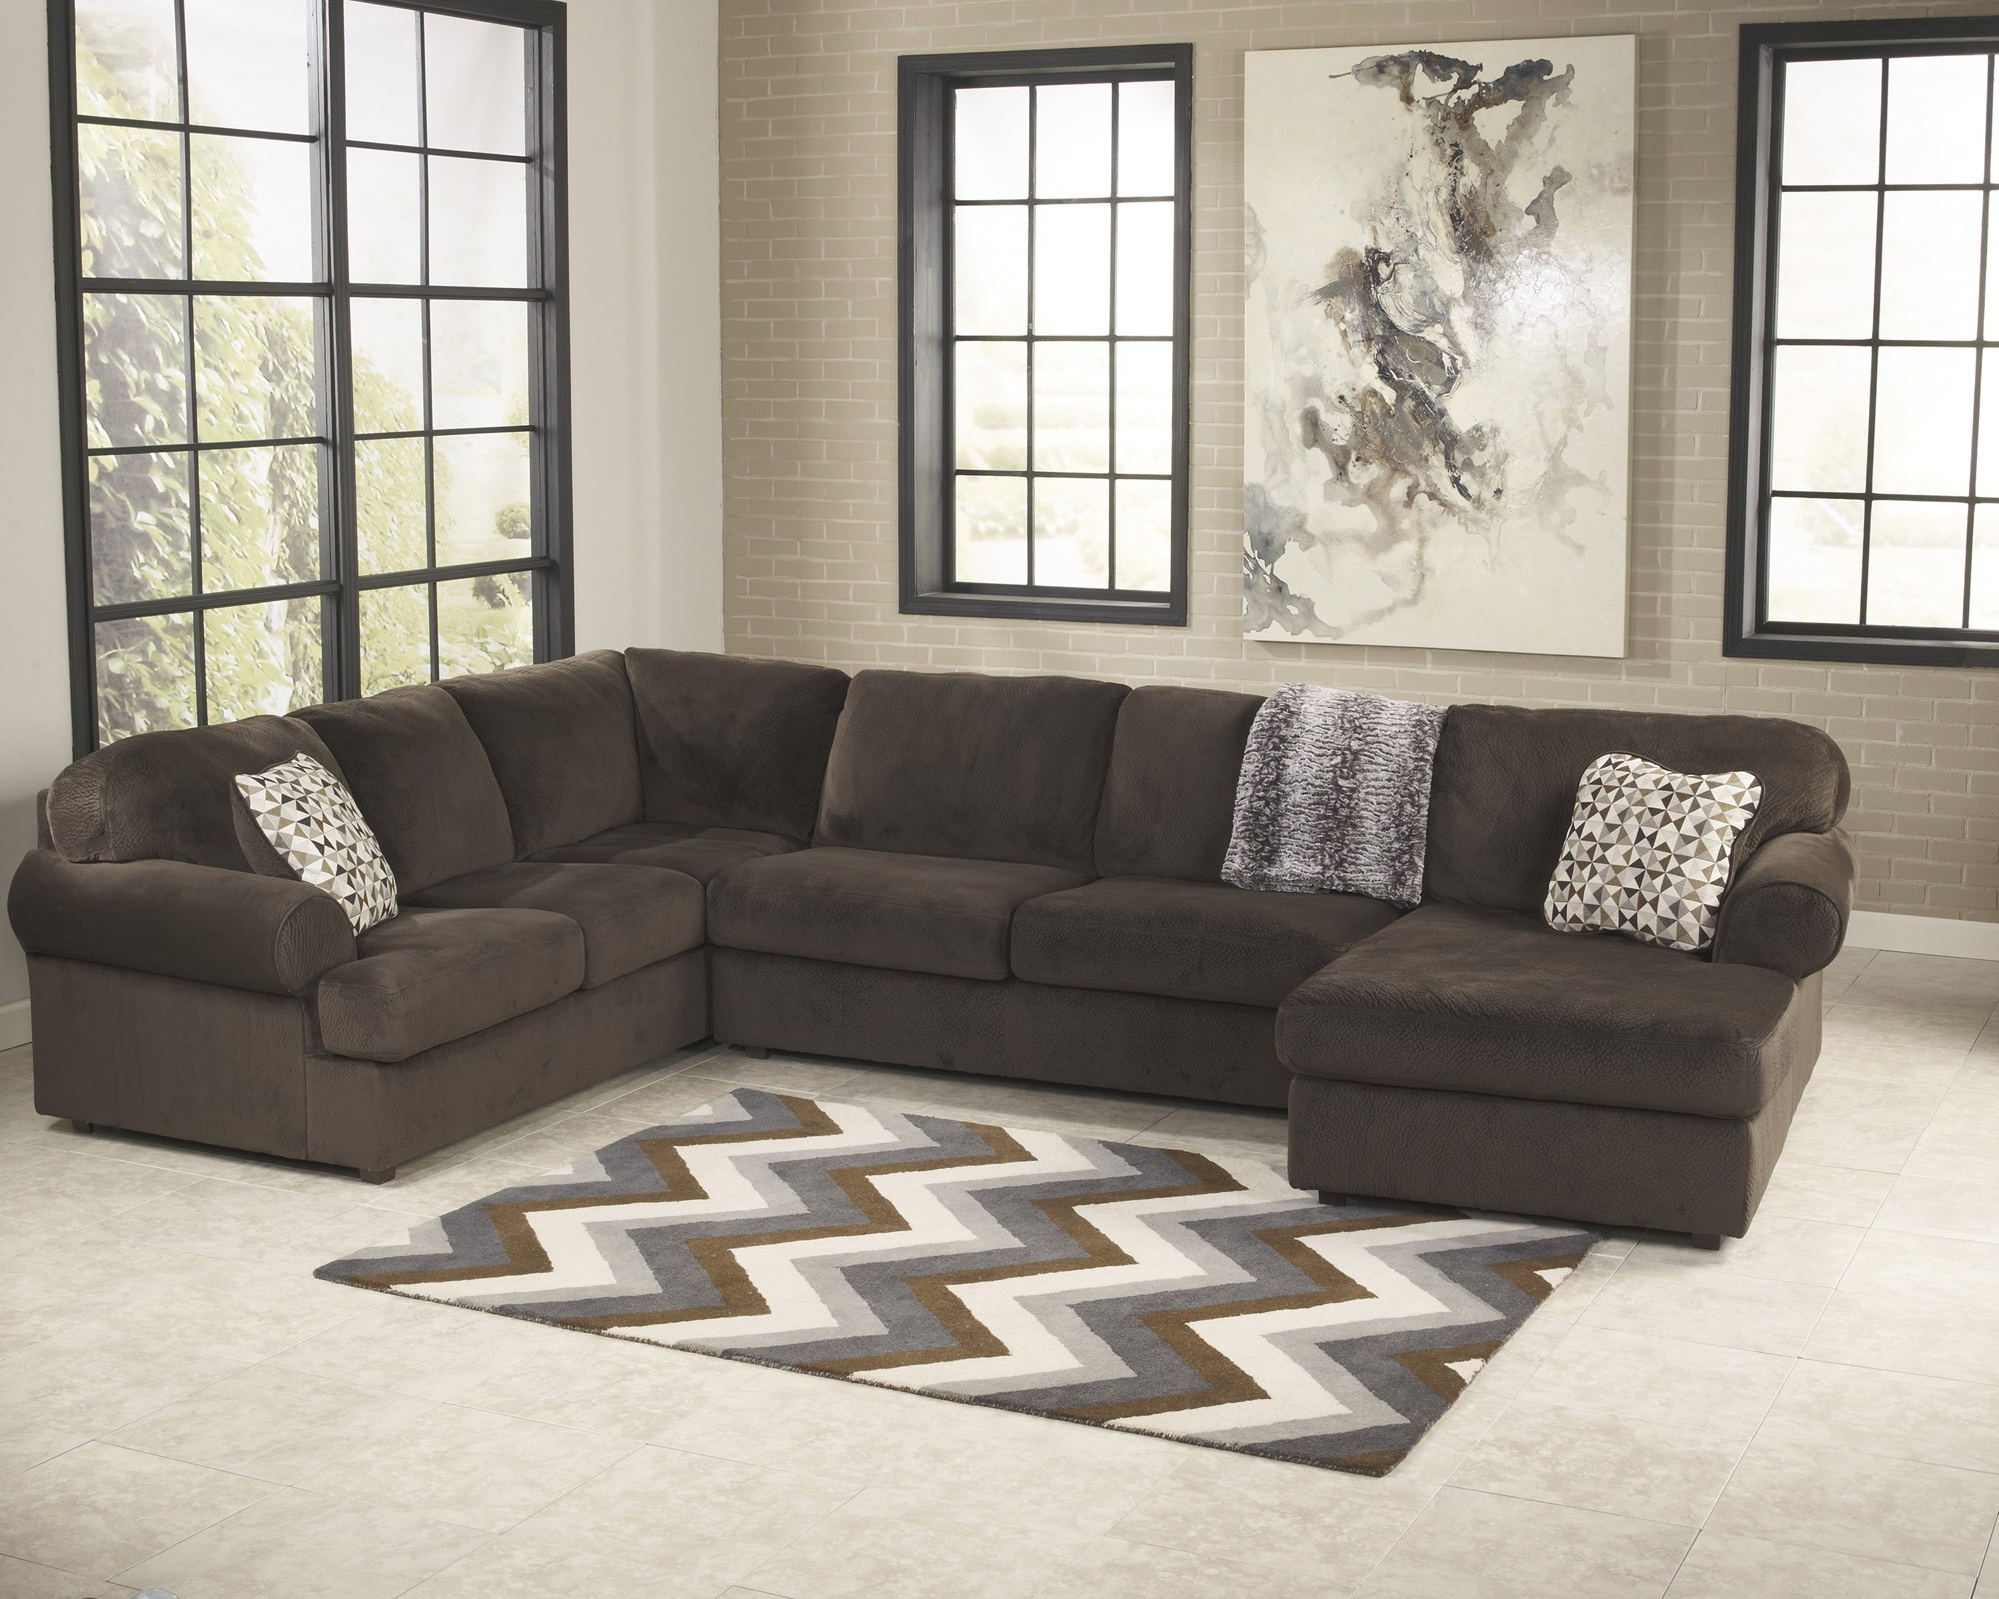 Malbry Point 3 Piece Sectionals With Raf Chaise Throughout Famous 3 Chaise Sectional (View 14 of 20)